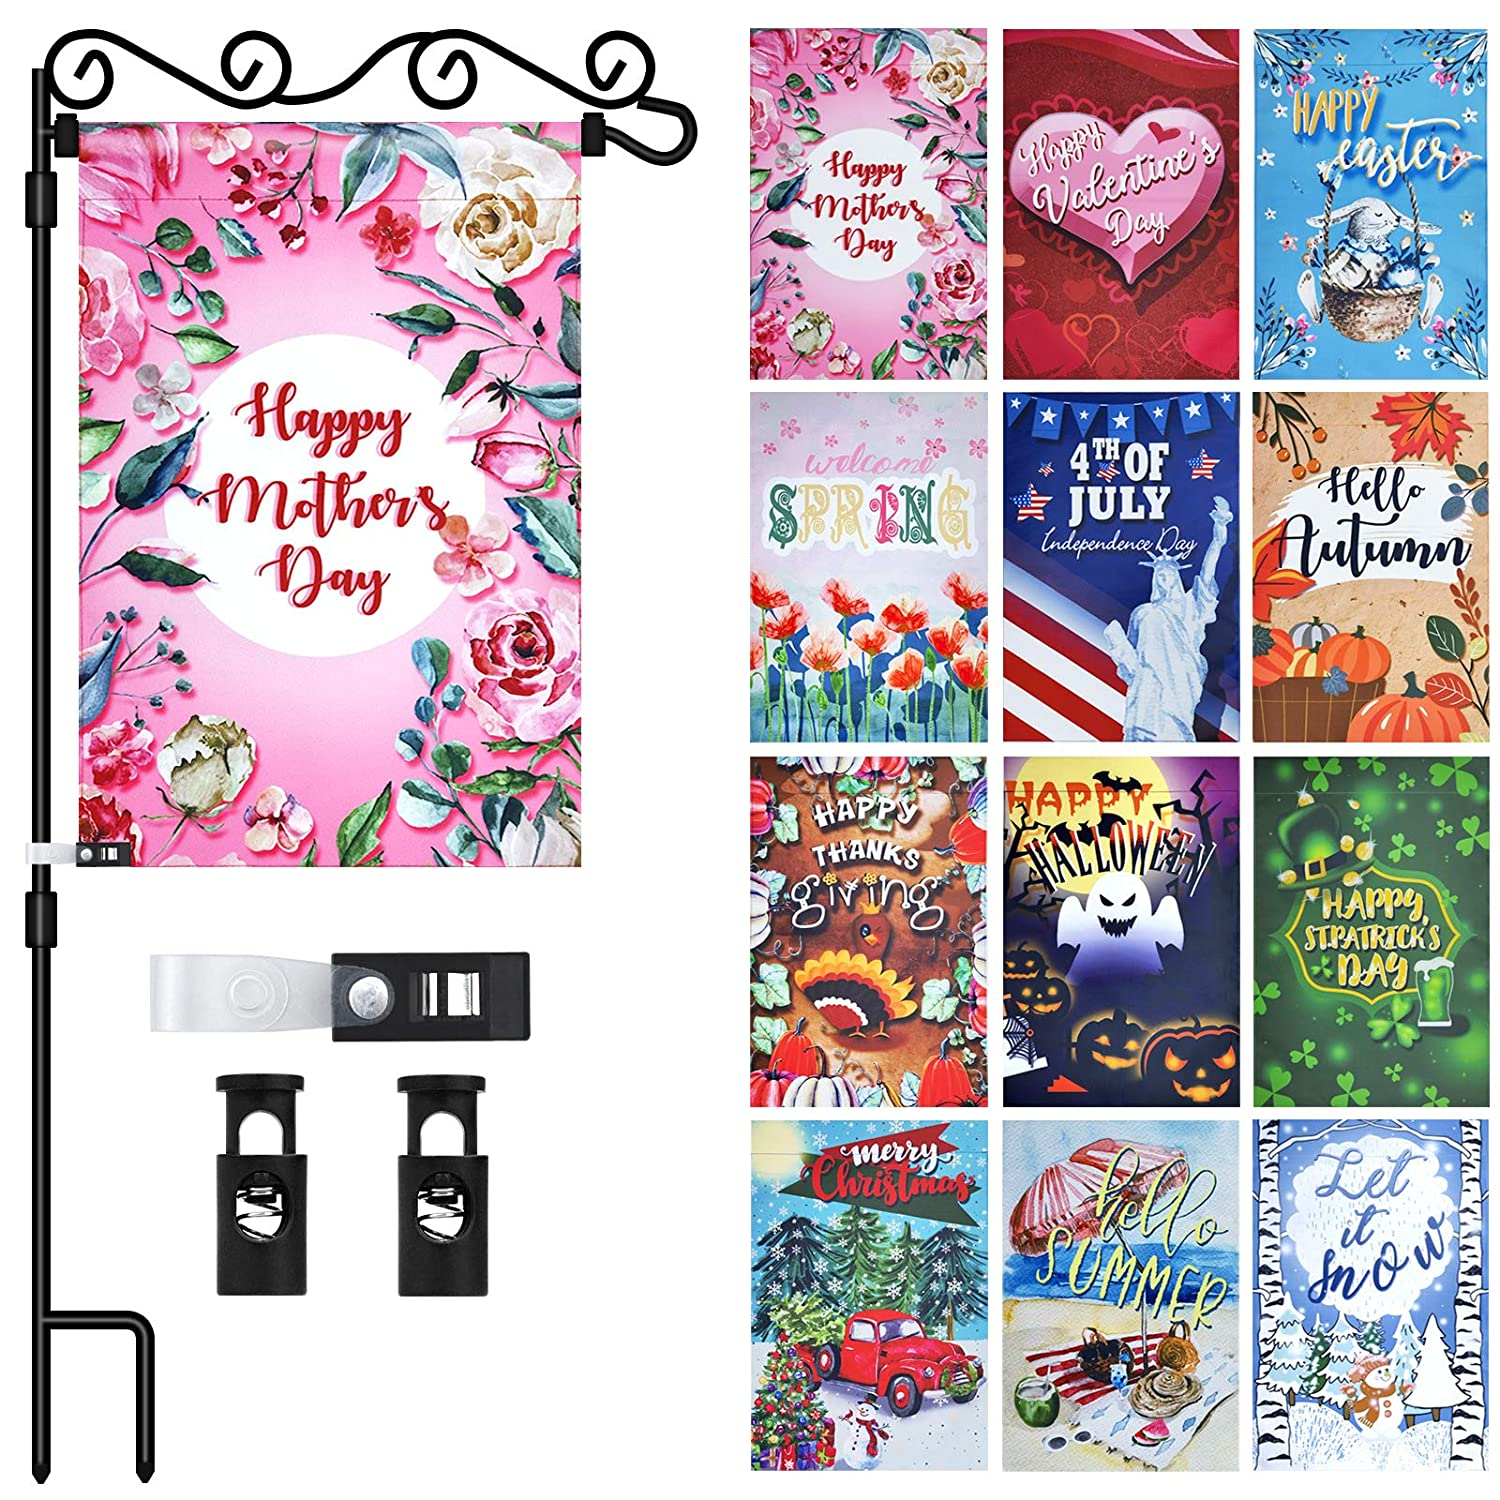 12 Pack Garden Flag with Flag Pole/Stand/Holder Festivel Double-Sided Yard Seasonal Garden Flag Decorations for Outdoor 12 x 18 Inch Small Banner Flags